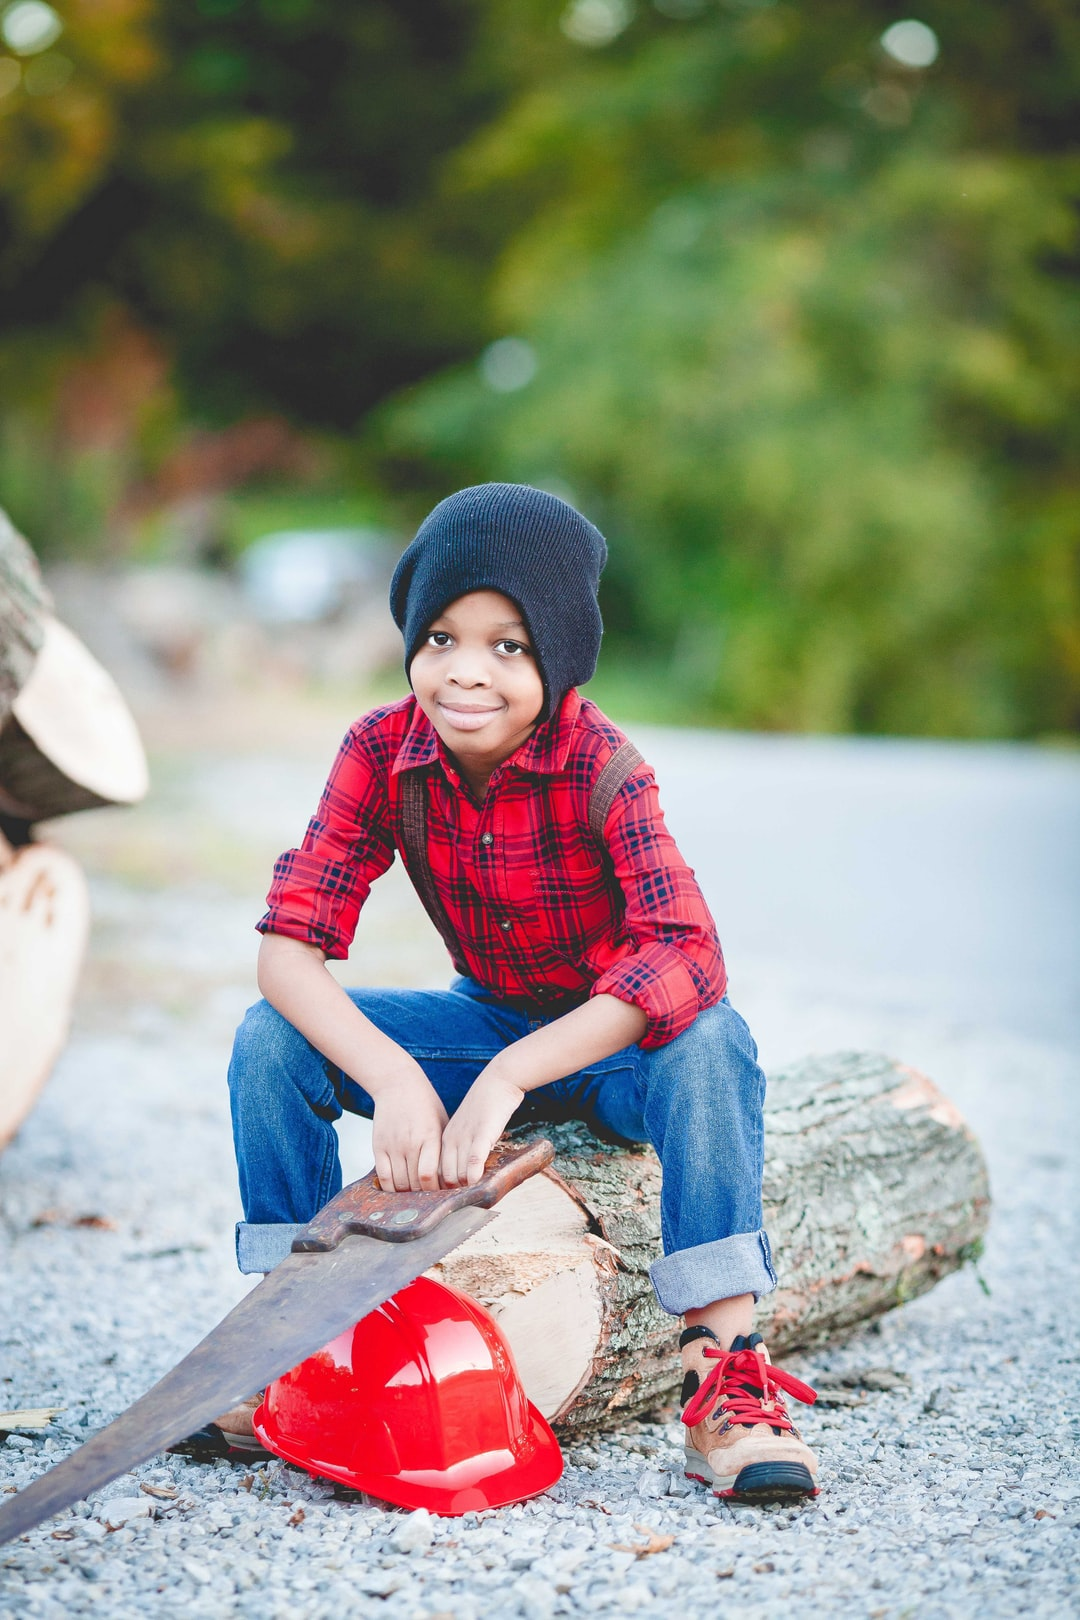 This is my youngest of 3. Took hm out for a pictures last year Halloween in his lumber jack costume. Probably my favorite photo of him right here.